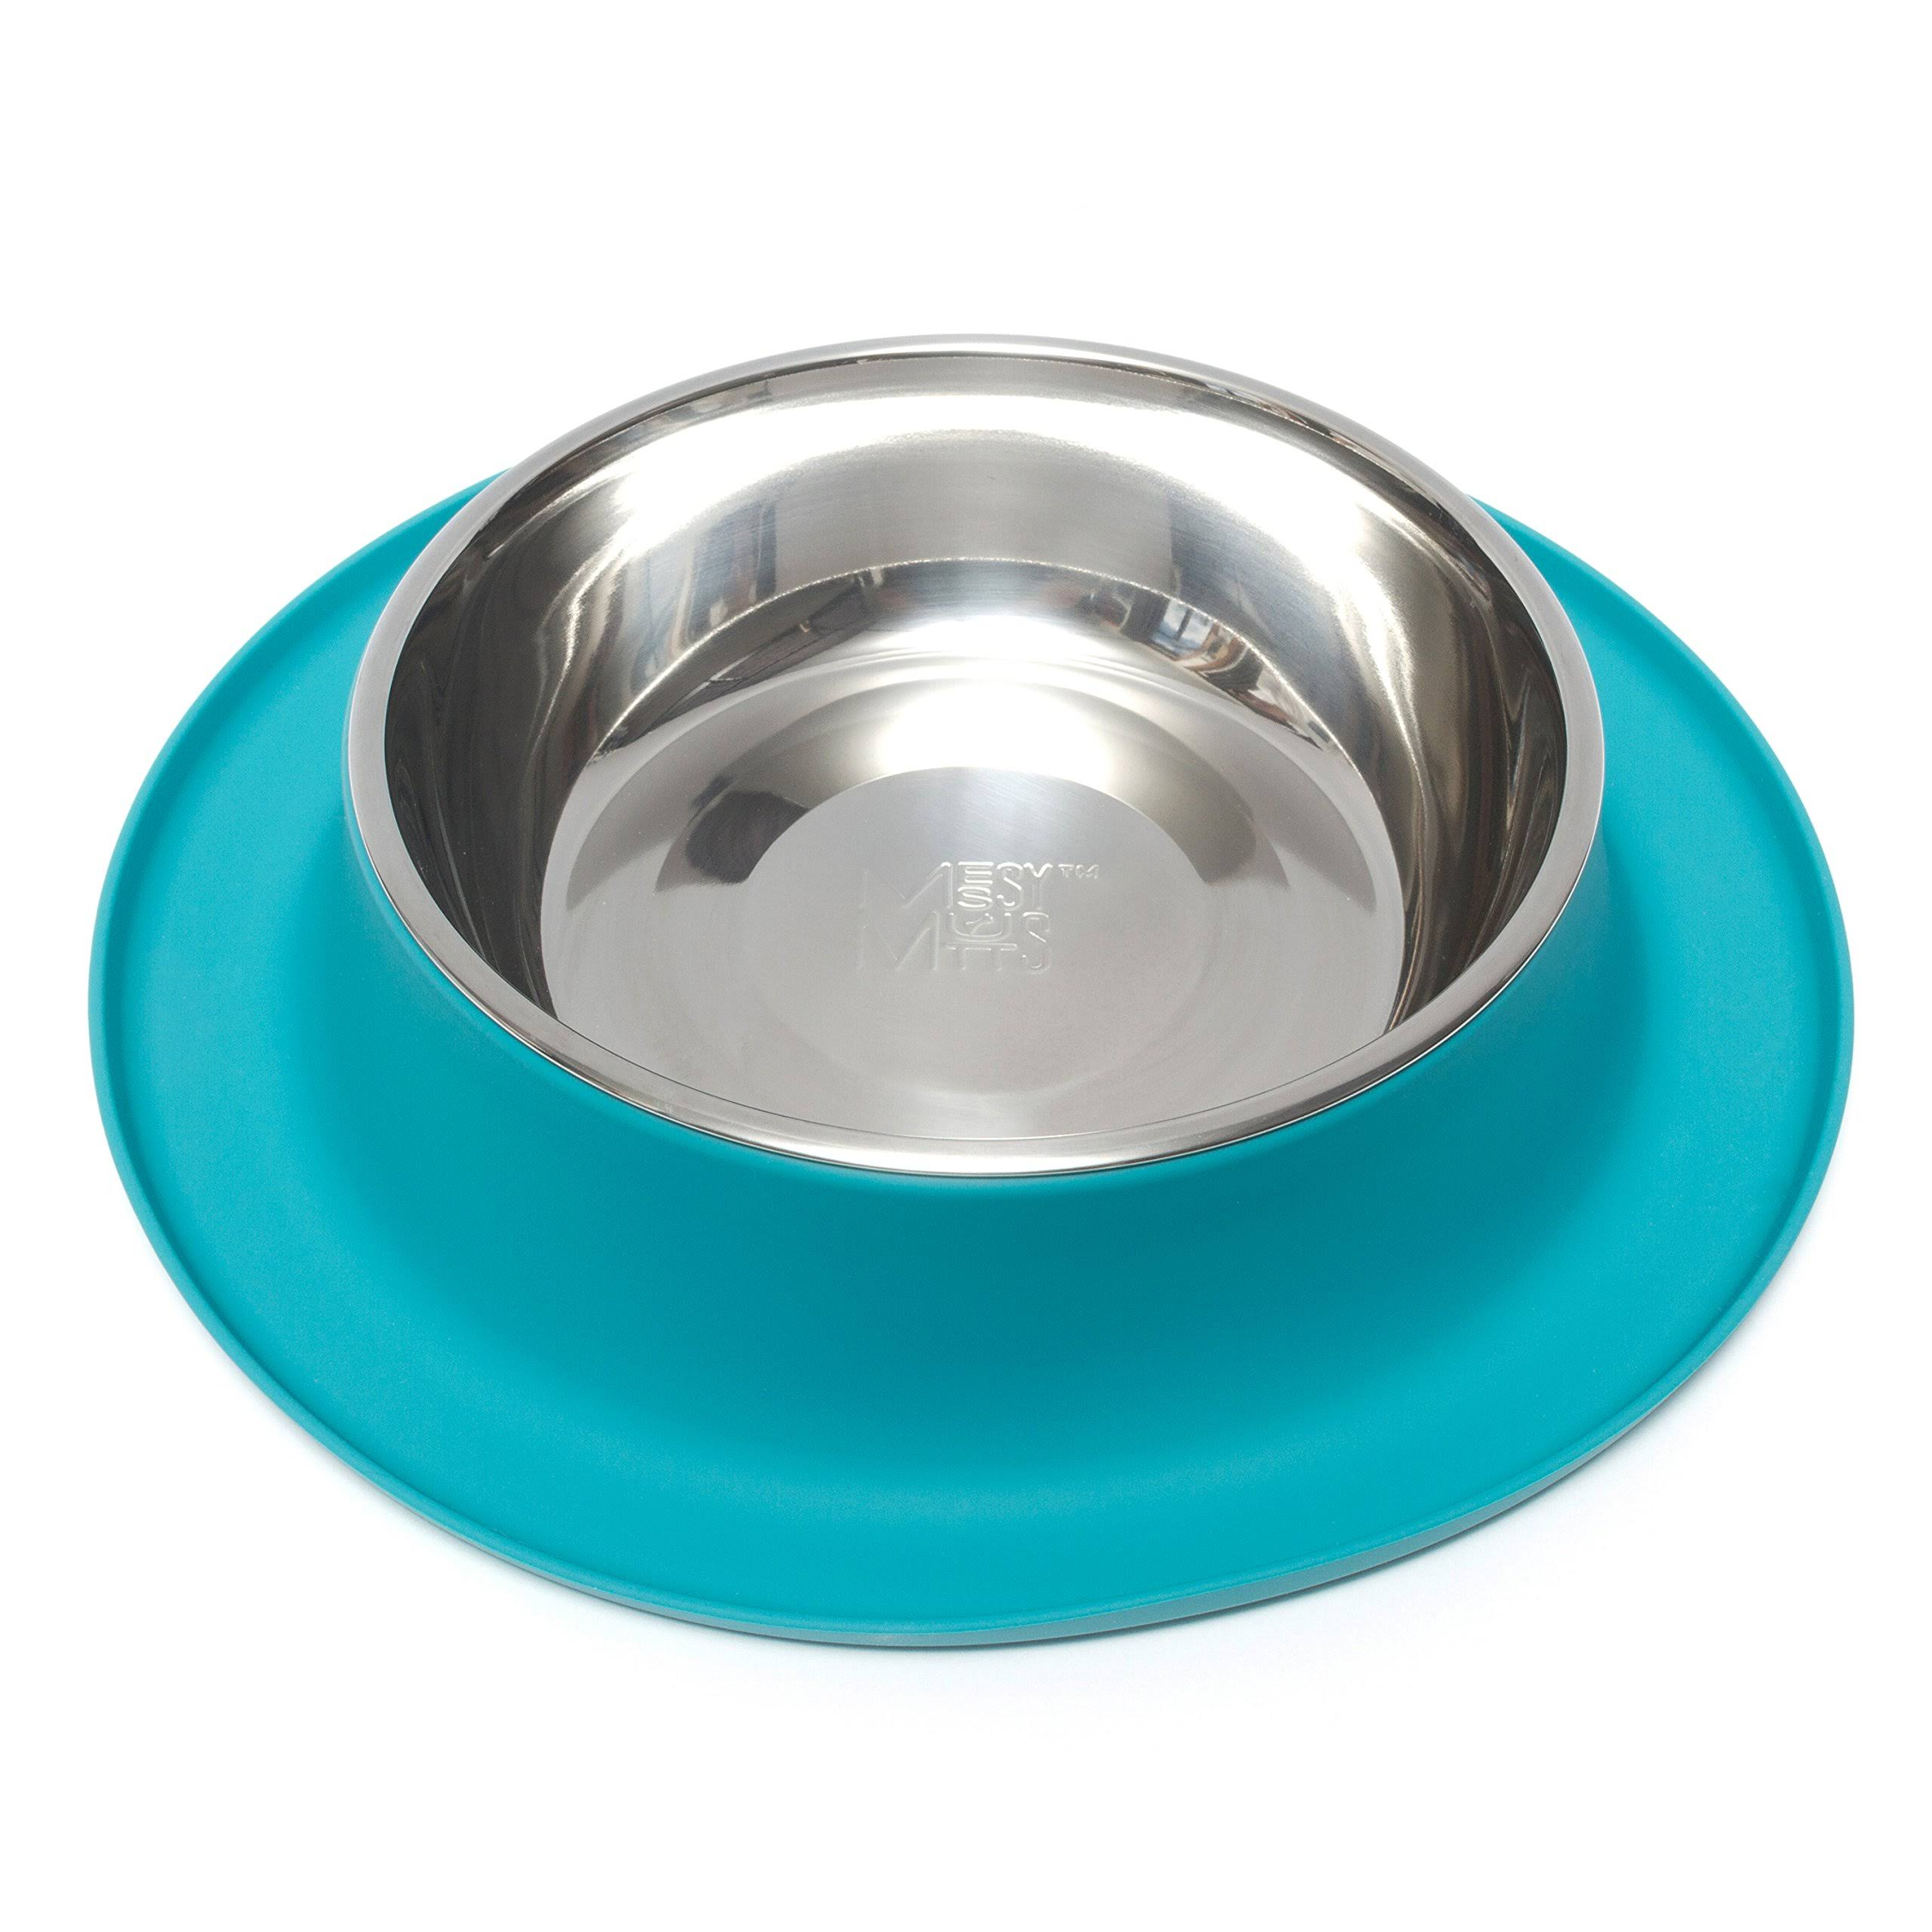 Messy Mutts Stainless Steel Dog Feeder - With Non-slip Silicone Base, Blue, XLarge